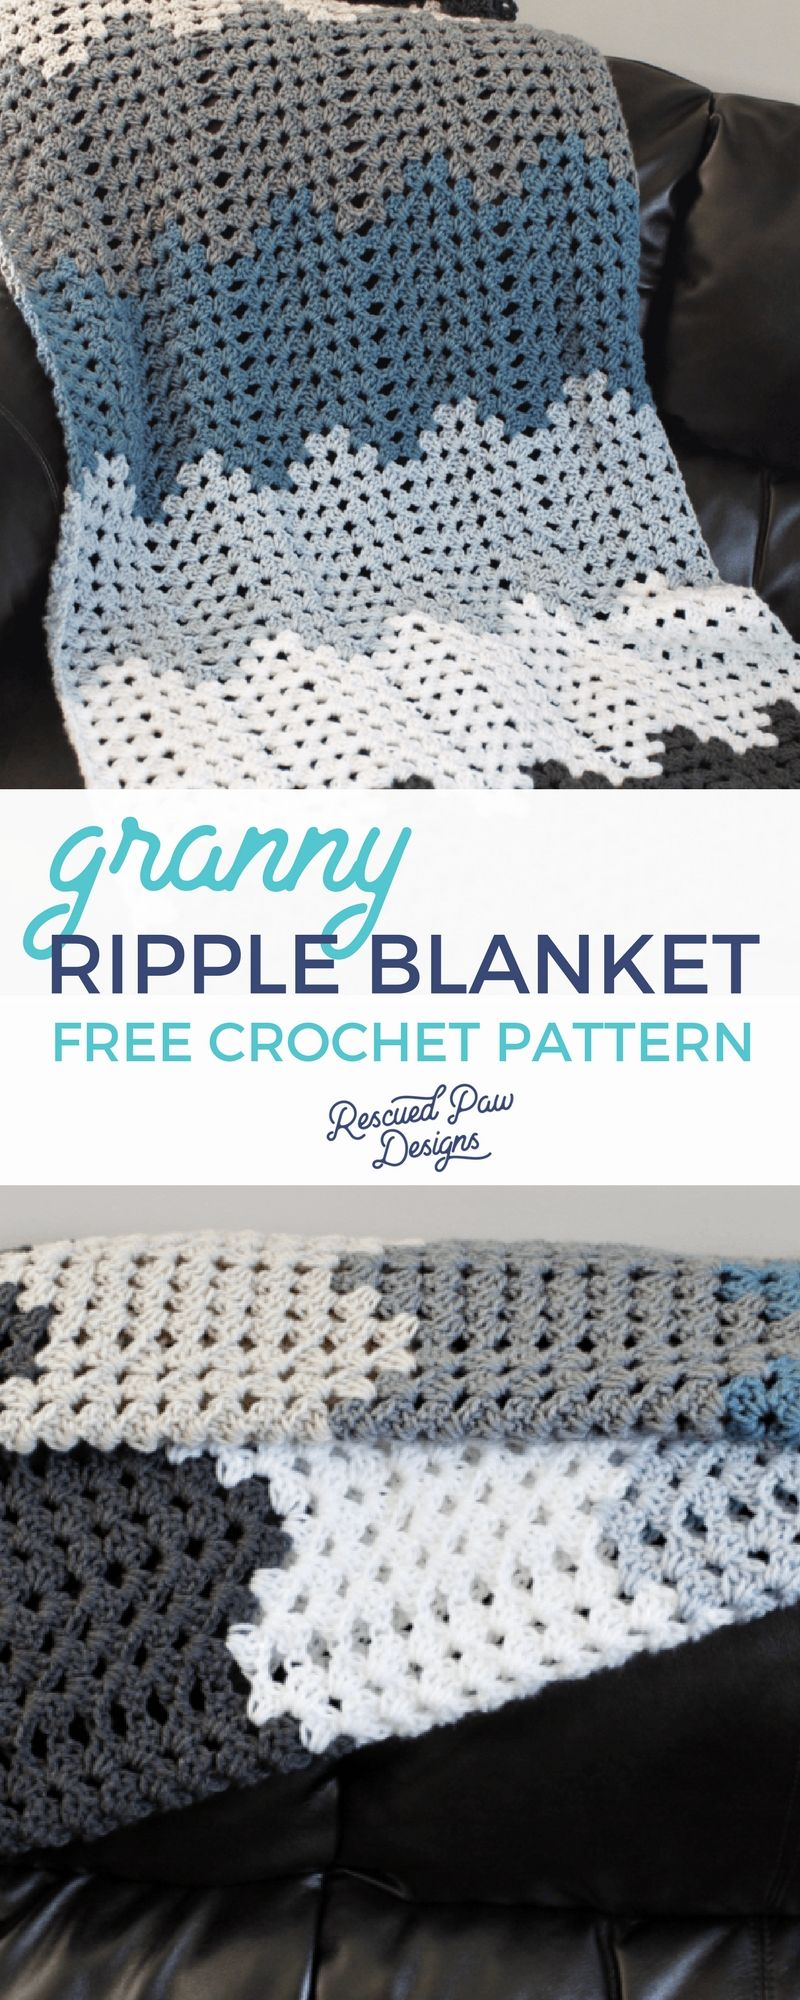 Granny Ripple Blanket Crochet Pattern Loom Knitting Häkeln